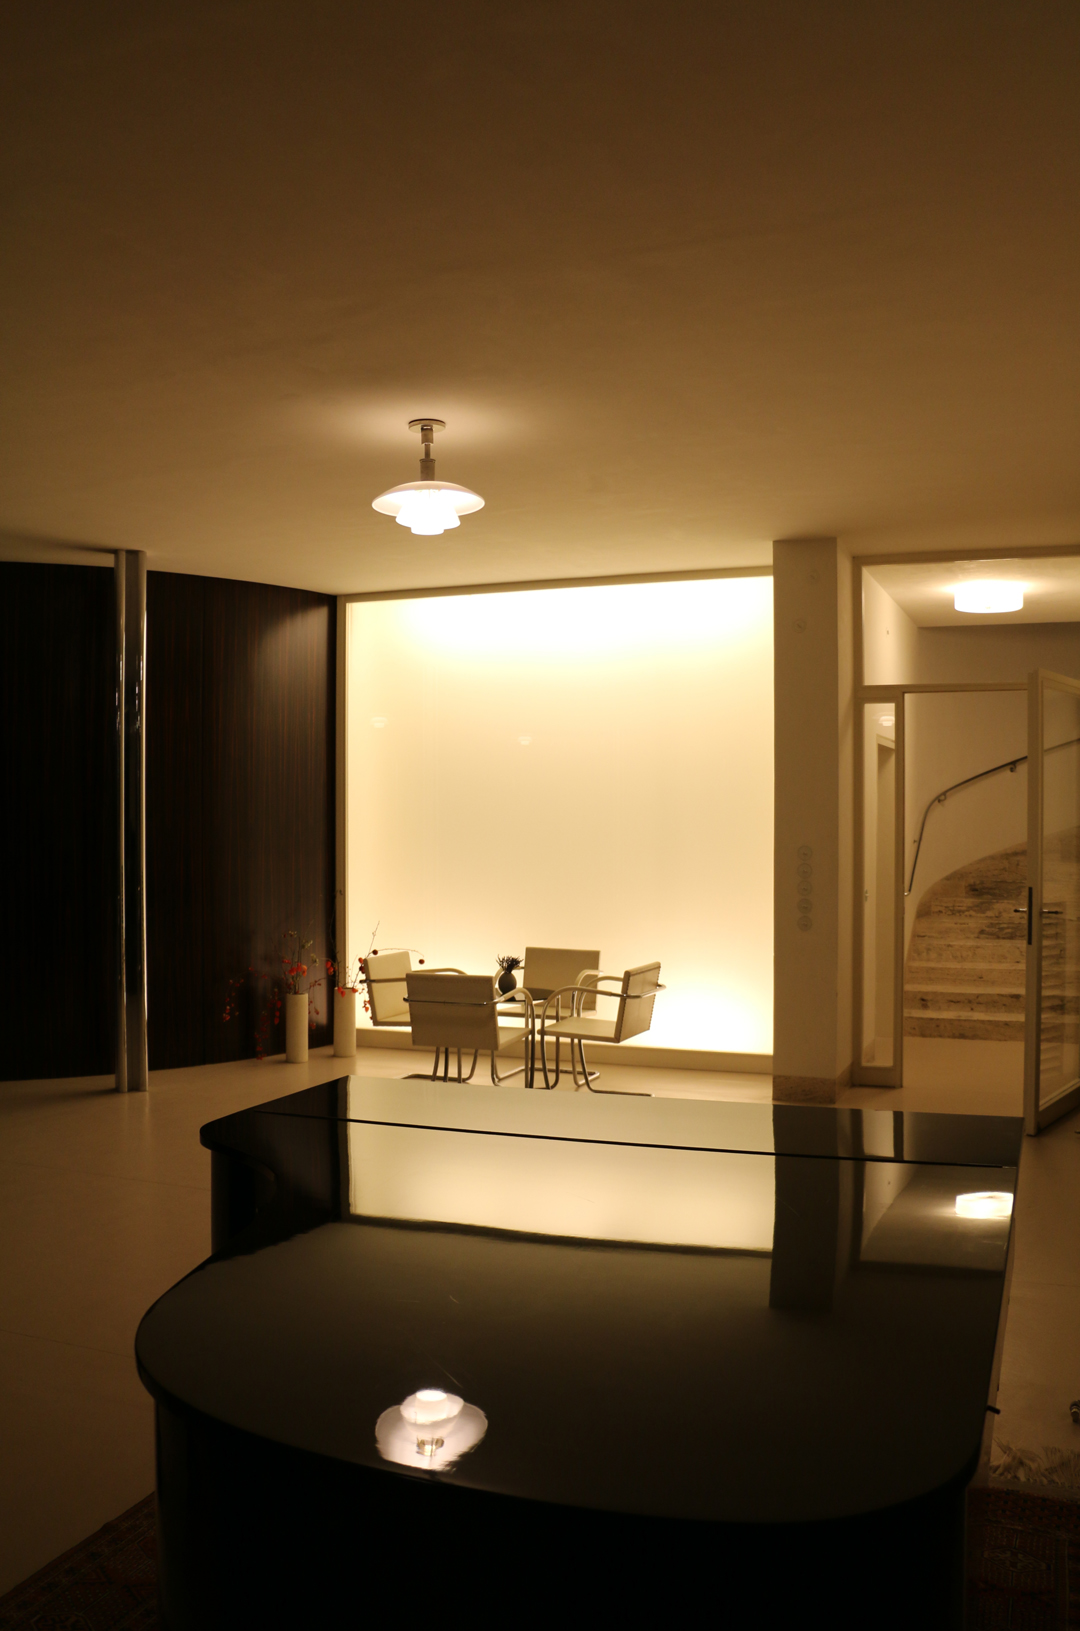 tugendhat house by ludwig mies van der rohe metalocus. Black Bedroom Furniture Sets. Home Design Ideas